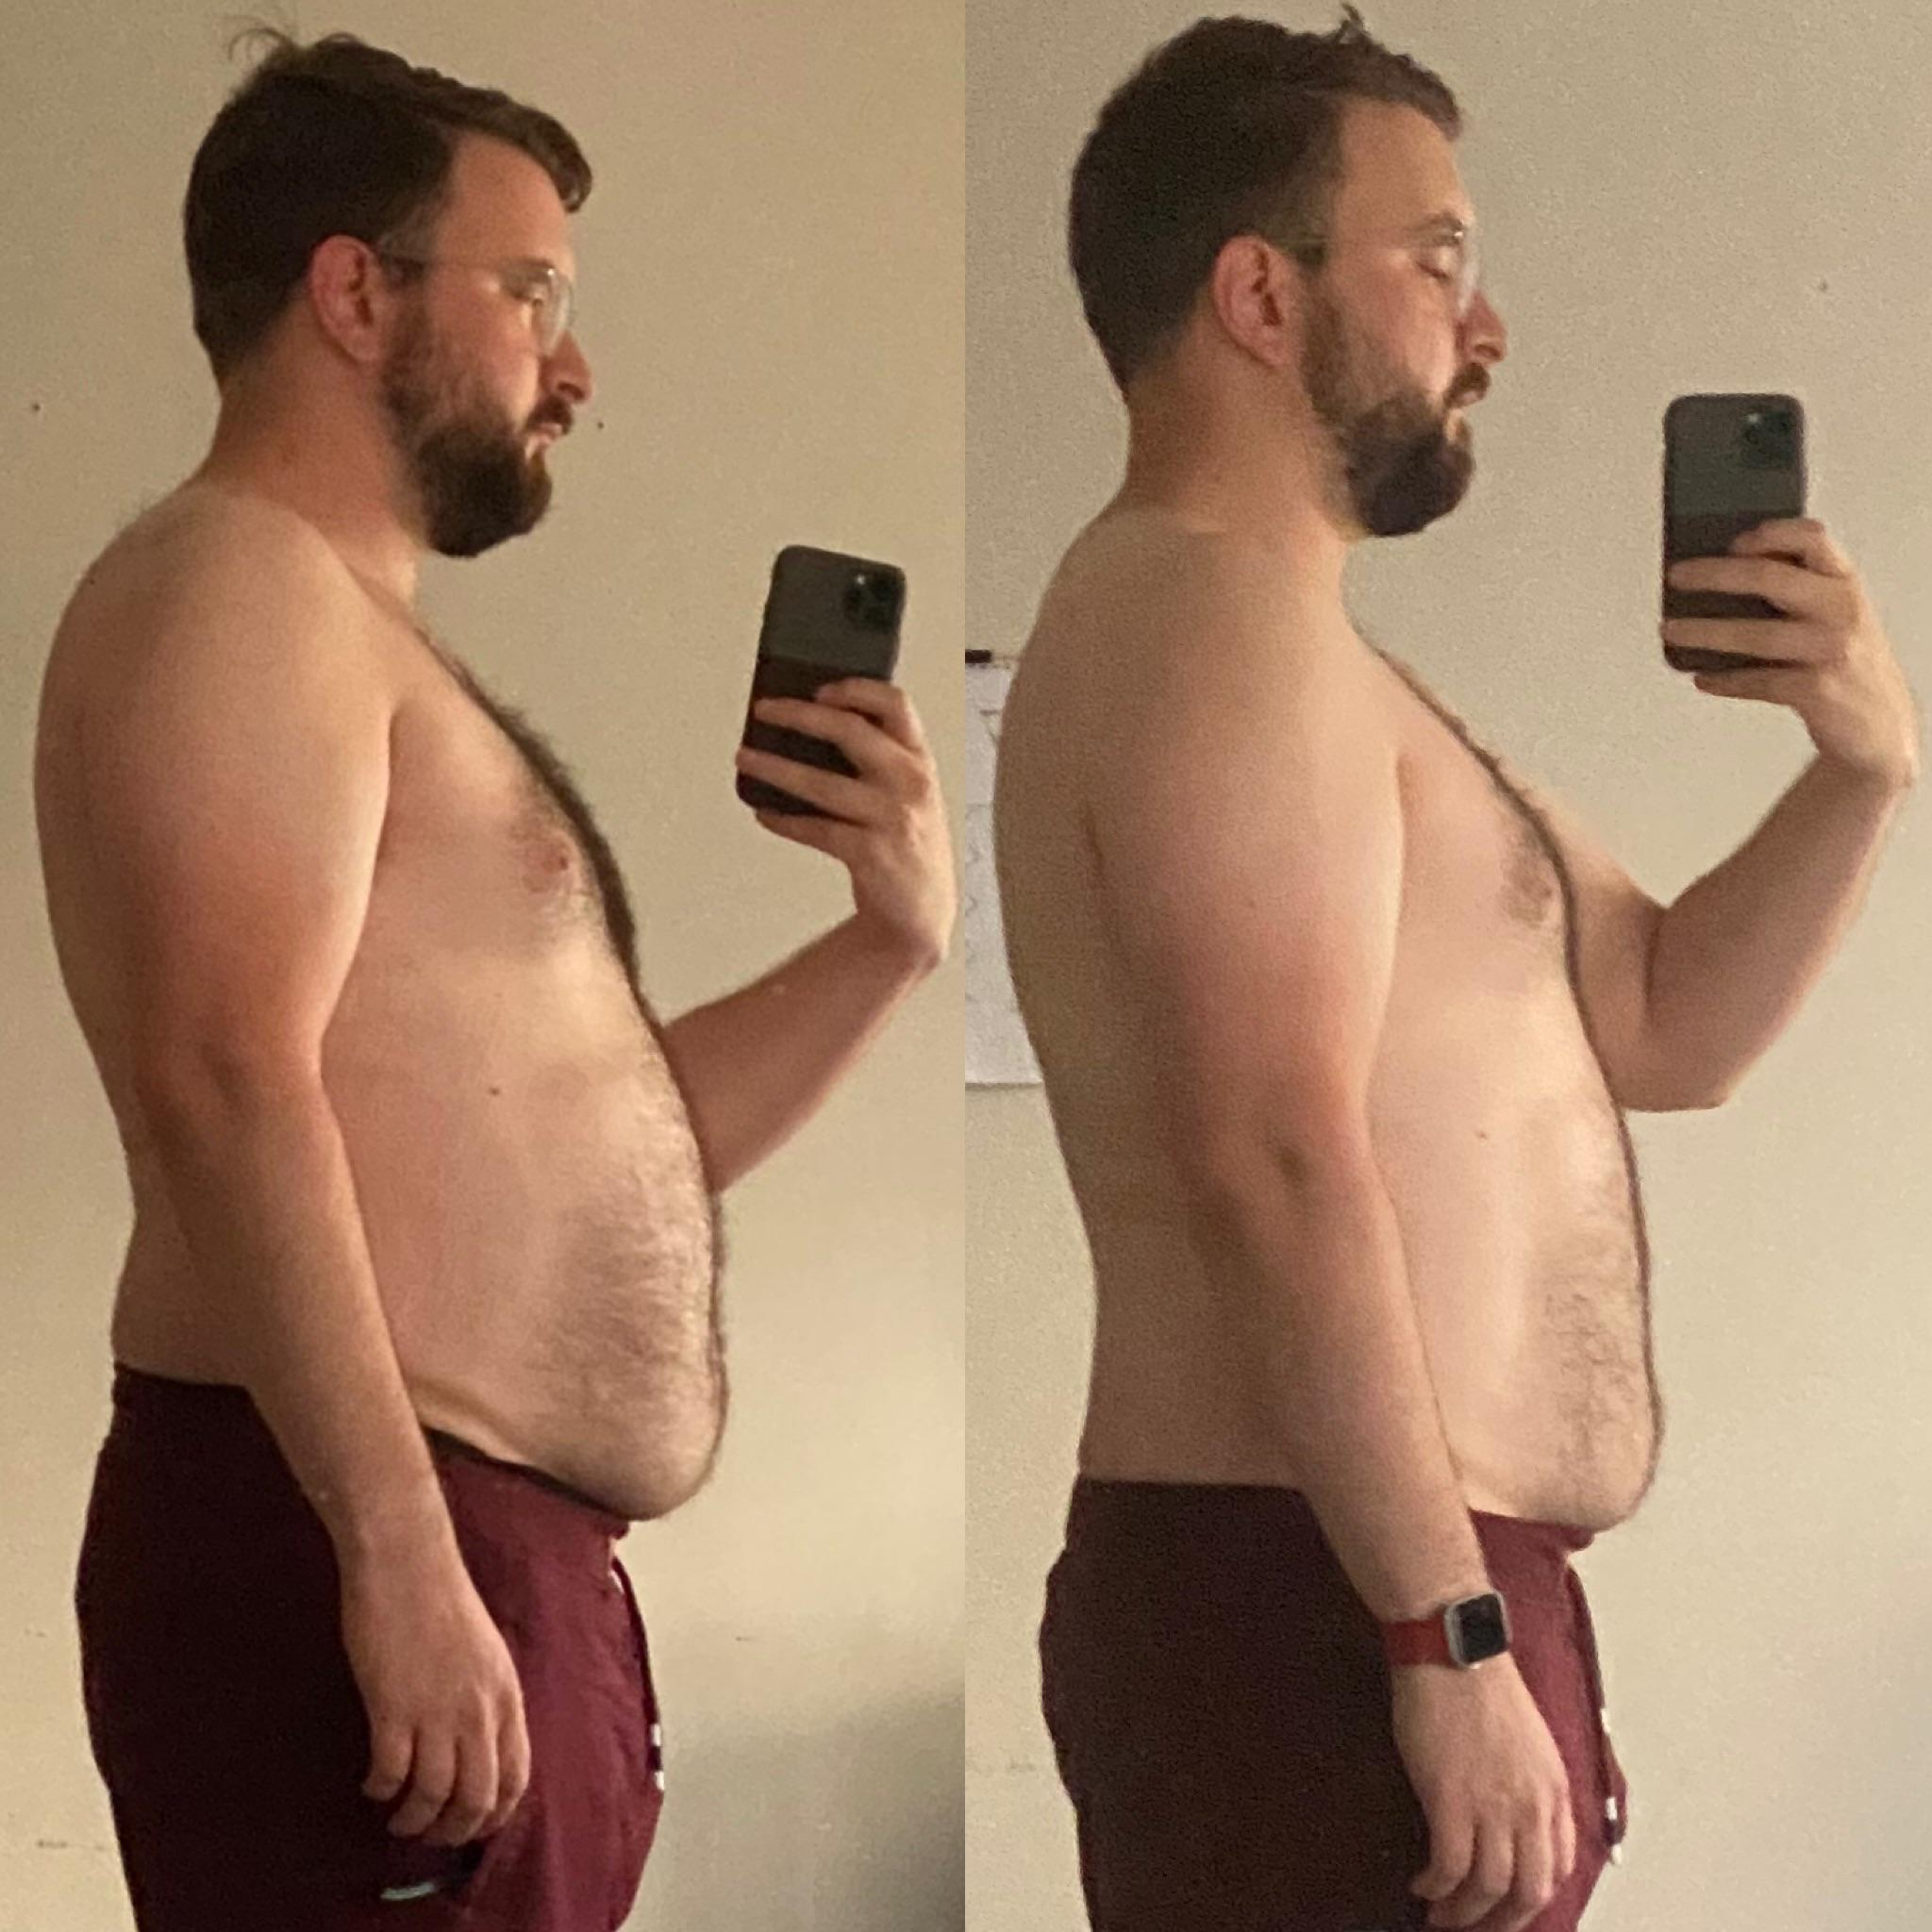 7 lbs Fat Loss Before and After 5 feet 9 Male 209 lbs to 202 lbs